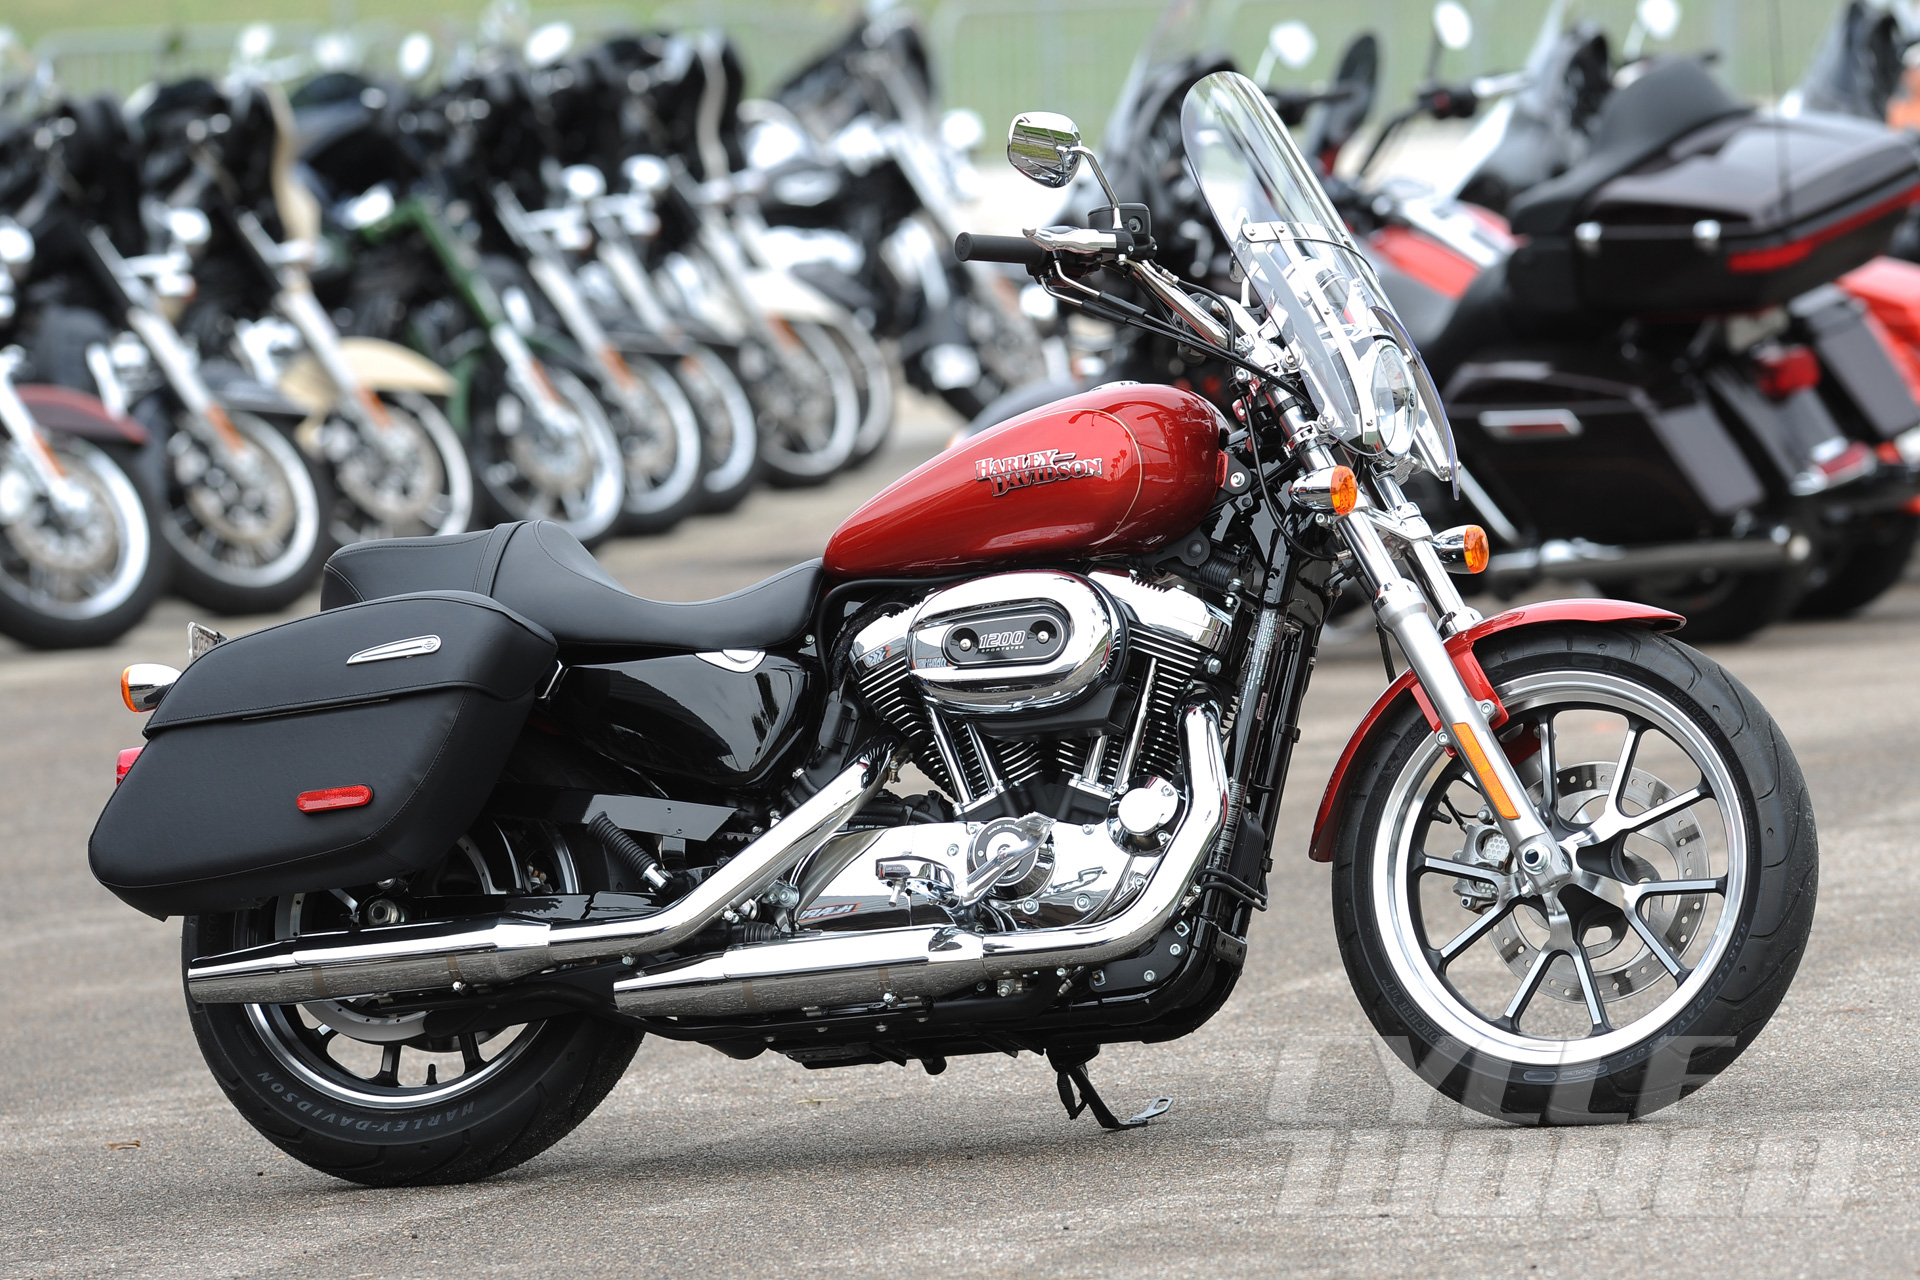 2014 Harley-Davidson XL1200T SuperLow- First Ride Review